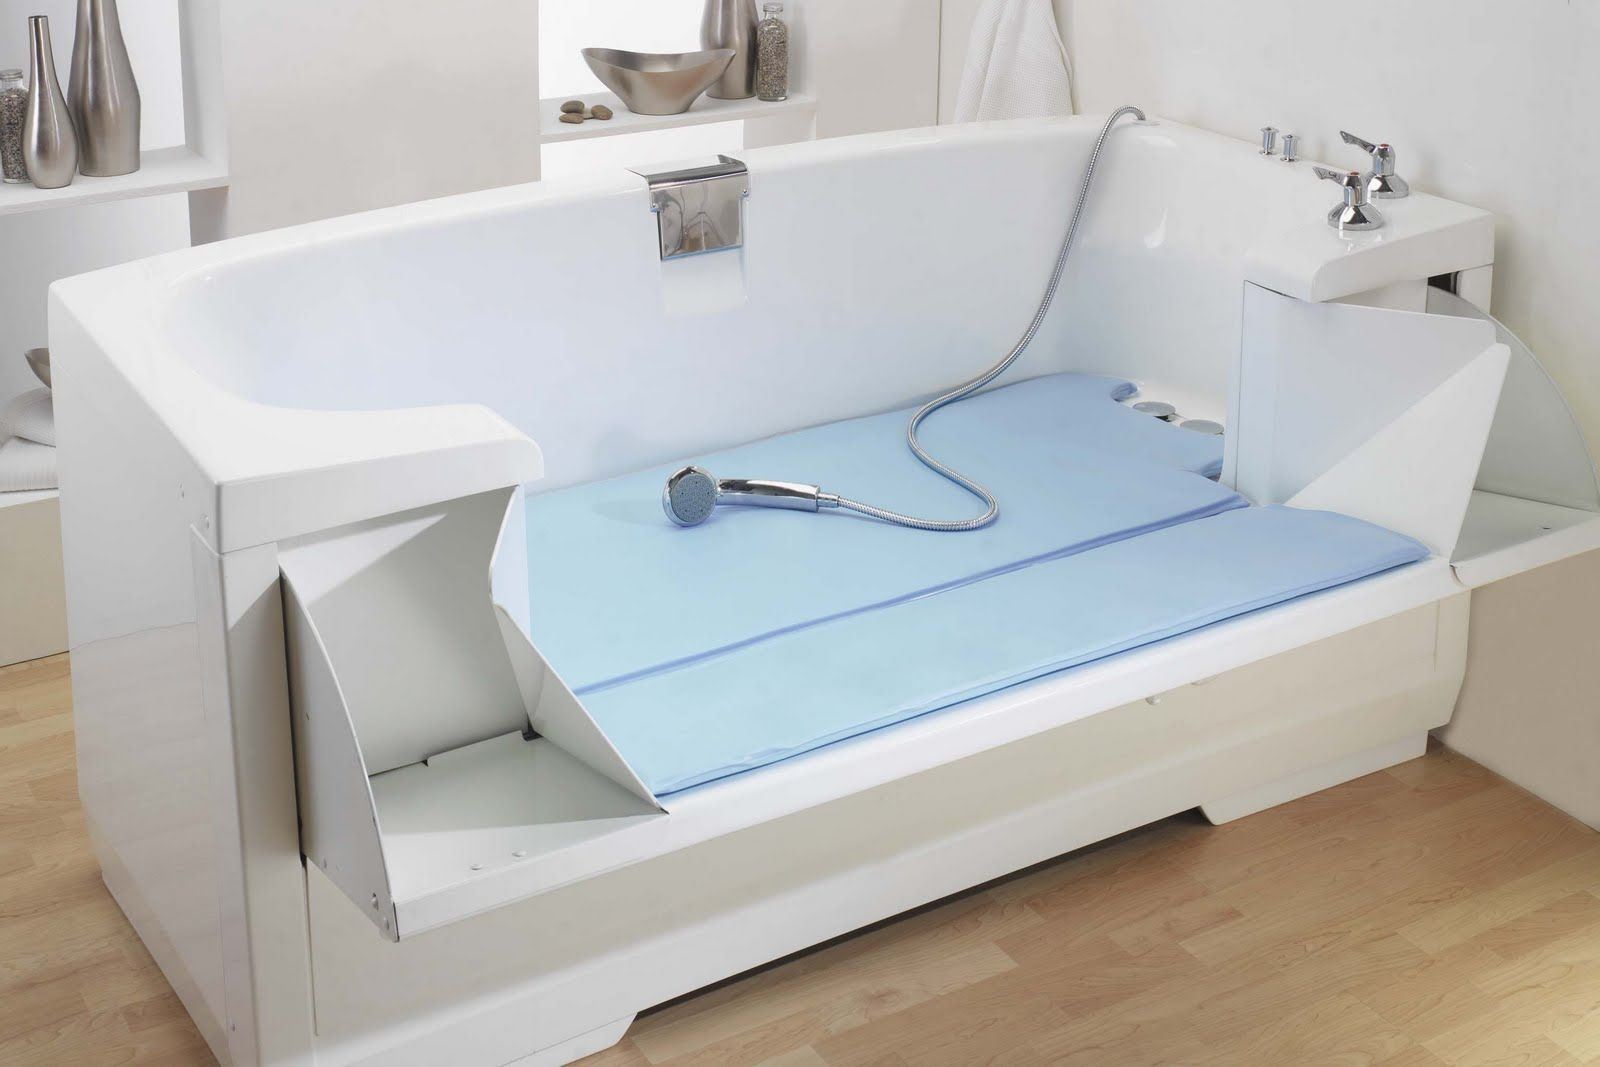 Elegant Handicapper Tubs | Bathtubs For The Elderly And Disabled | Disabled Bathroom